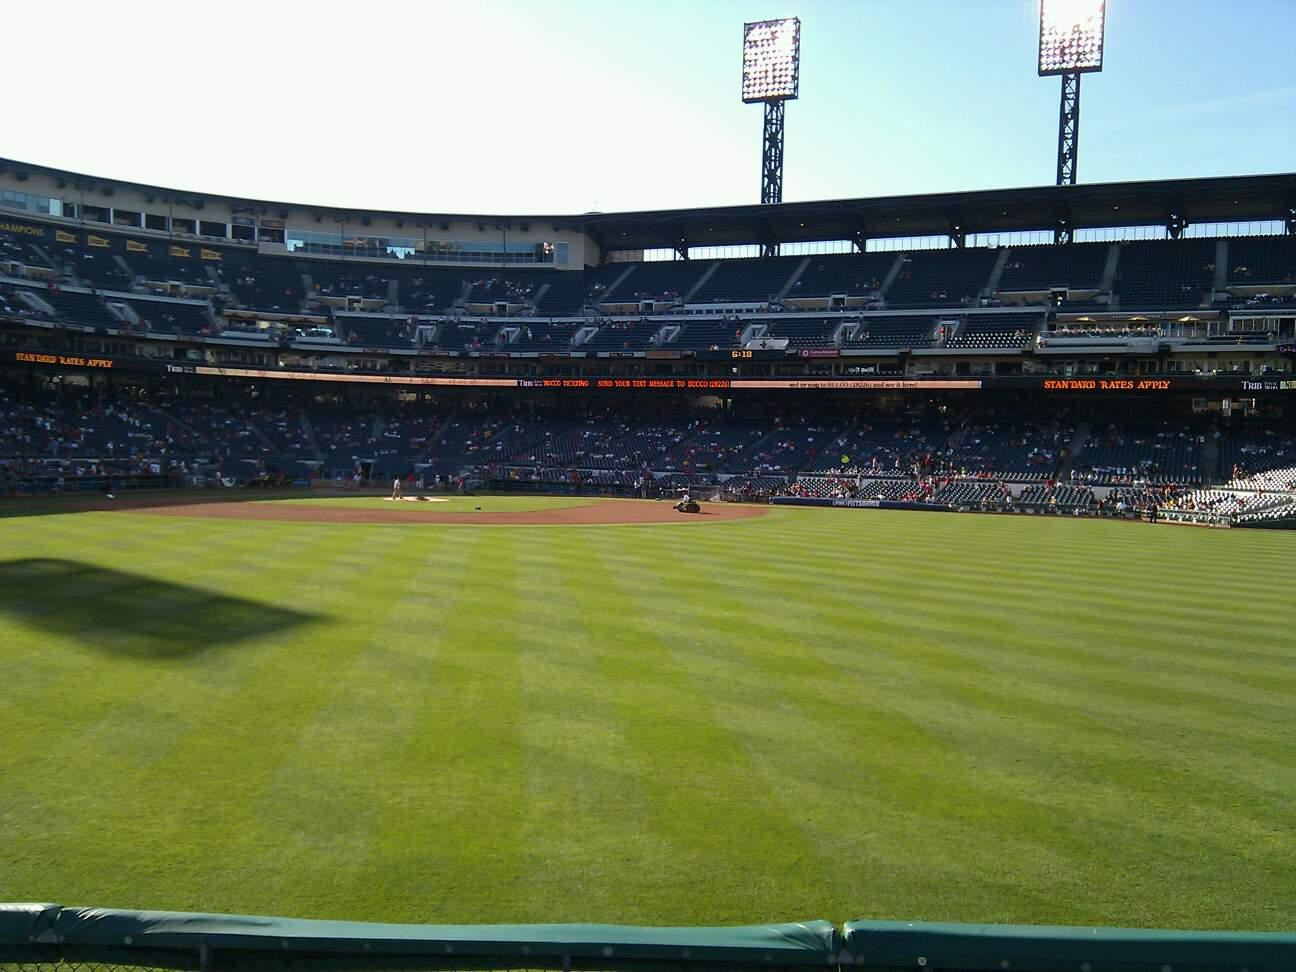 PNC Park Section 140 Row f Seat 10